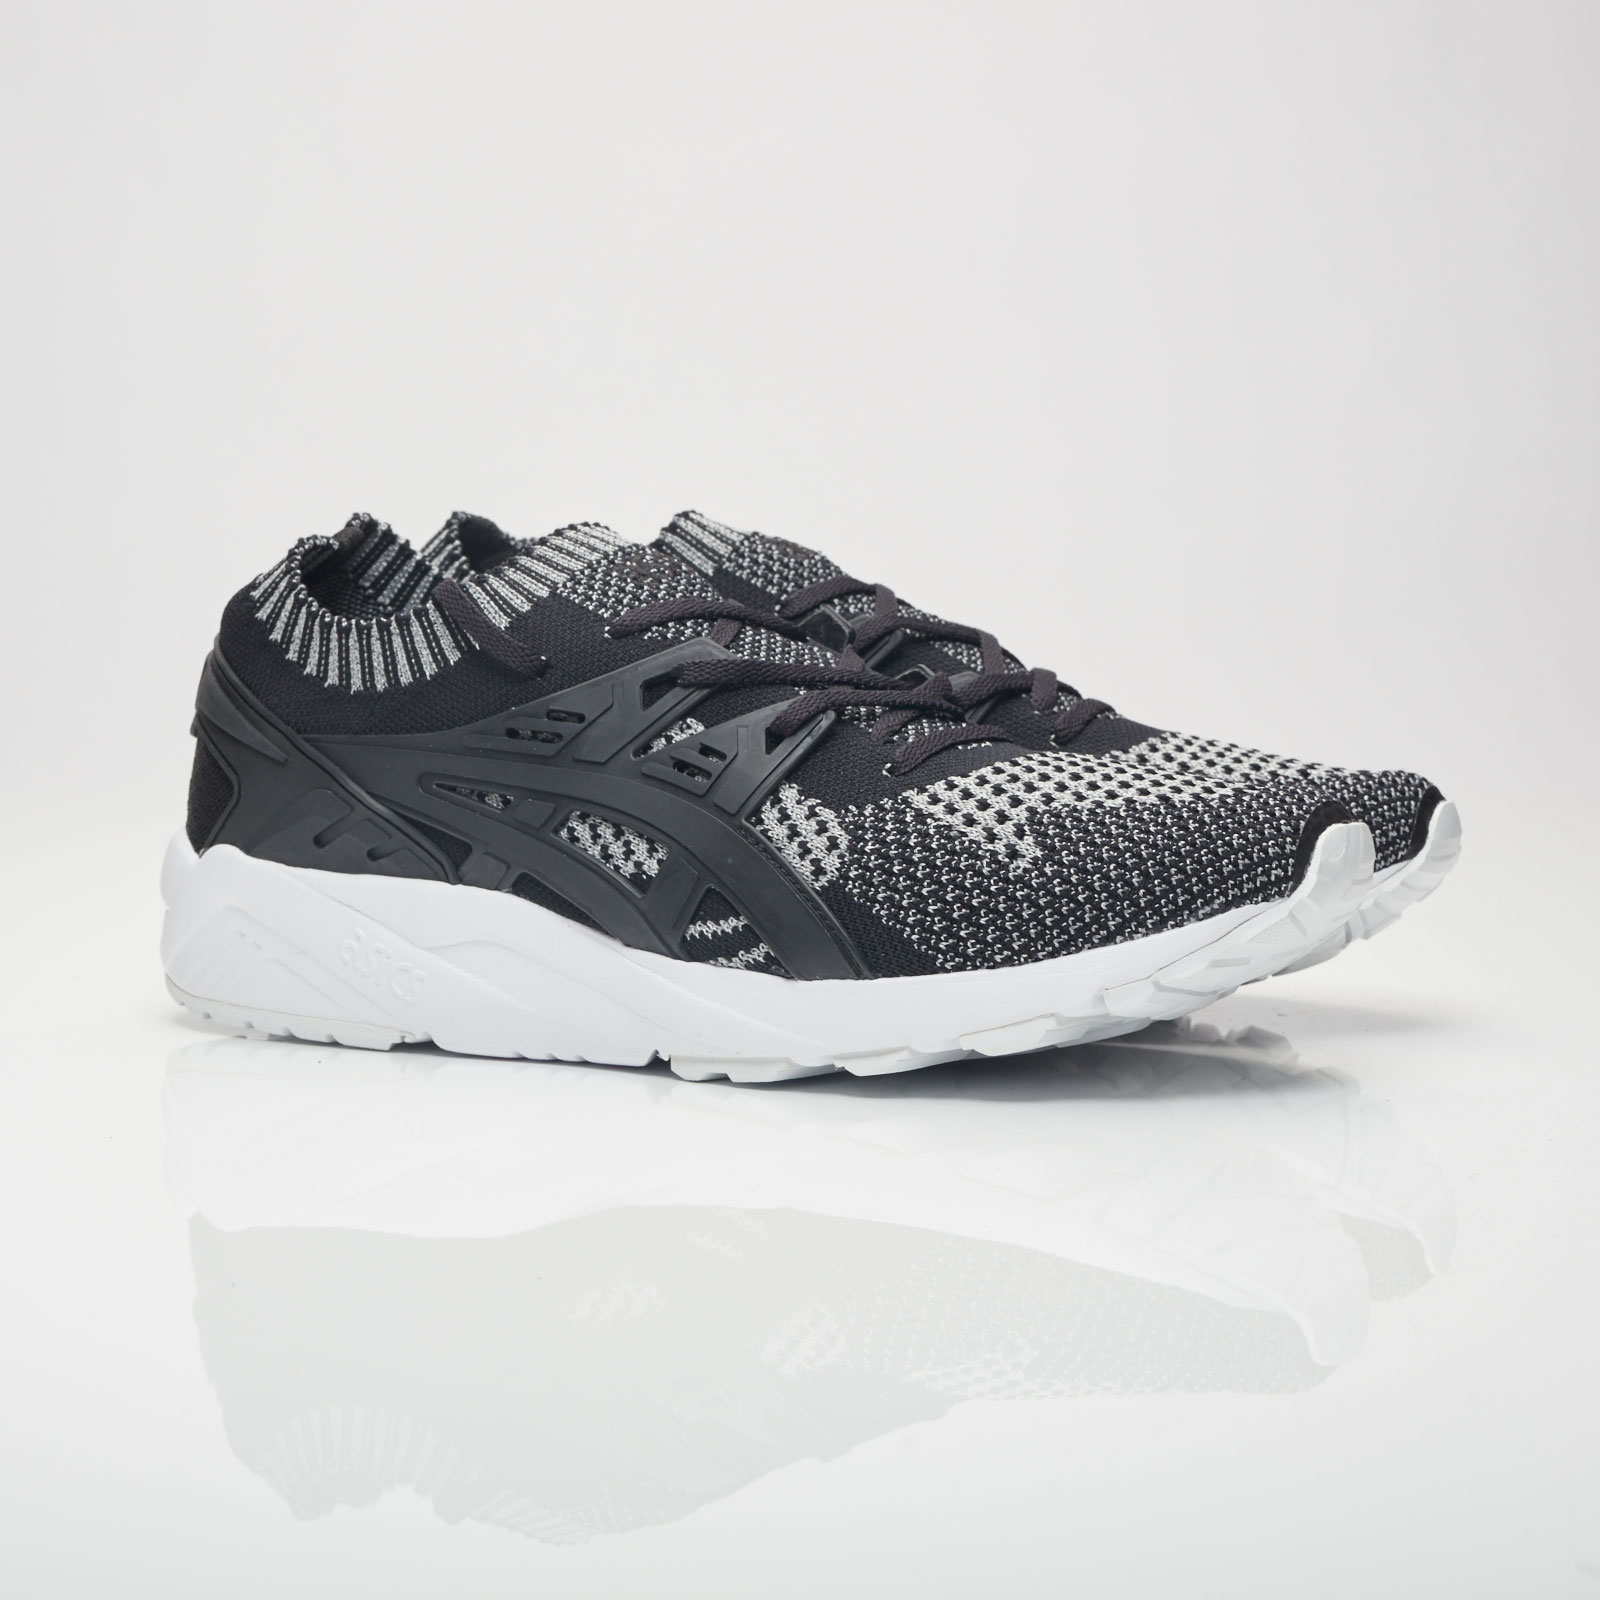 brand new 66afb 8fe5f ASICS Tiger Gel-Kayano Trainer Knit - H7s3n-9390 ...